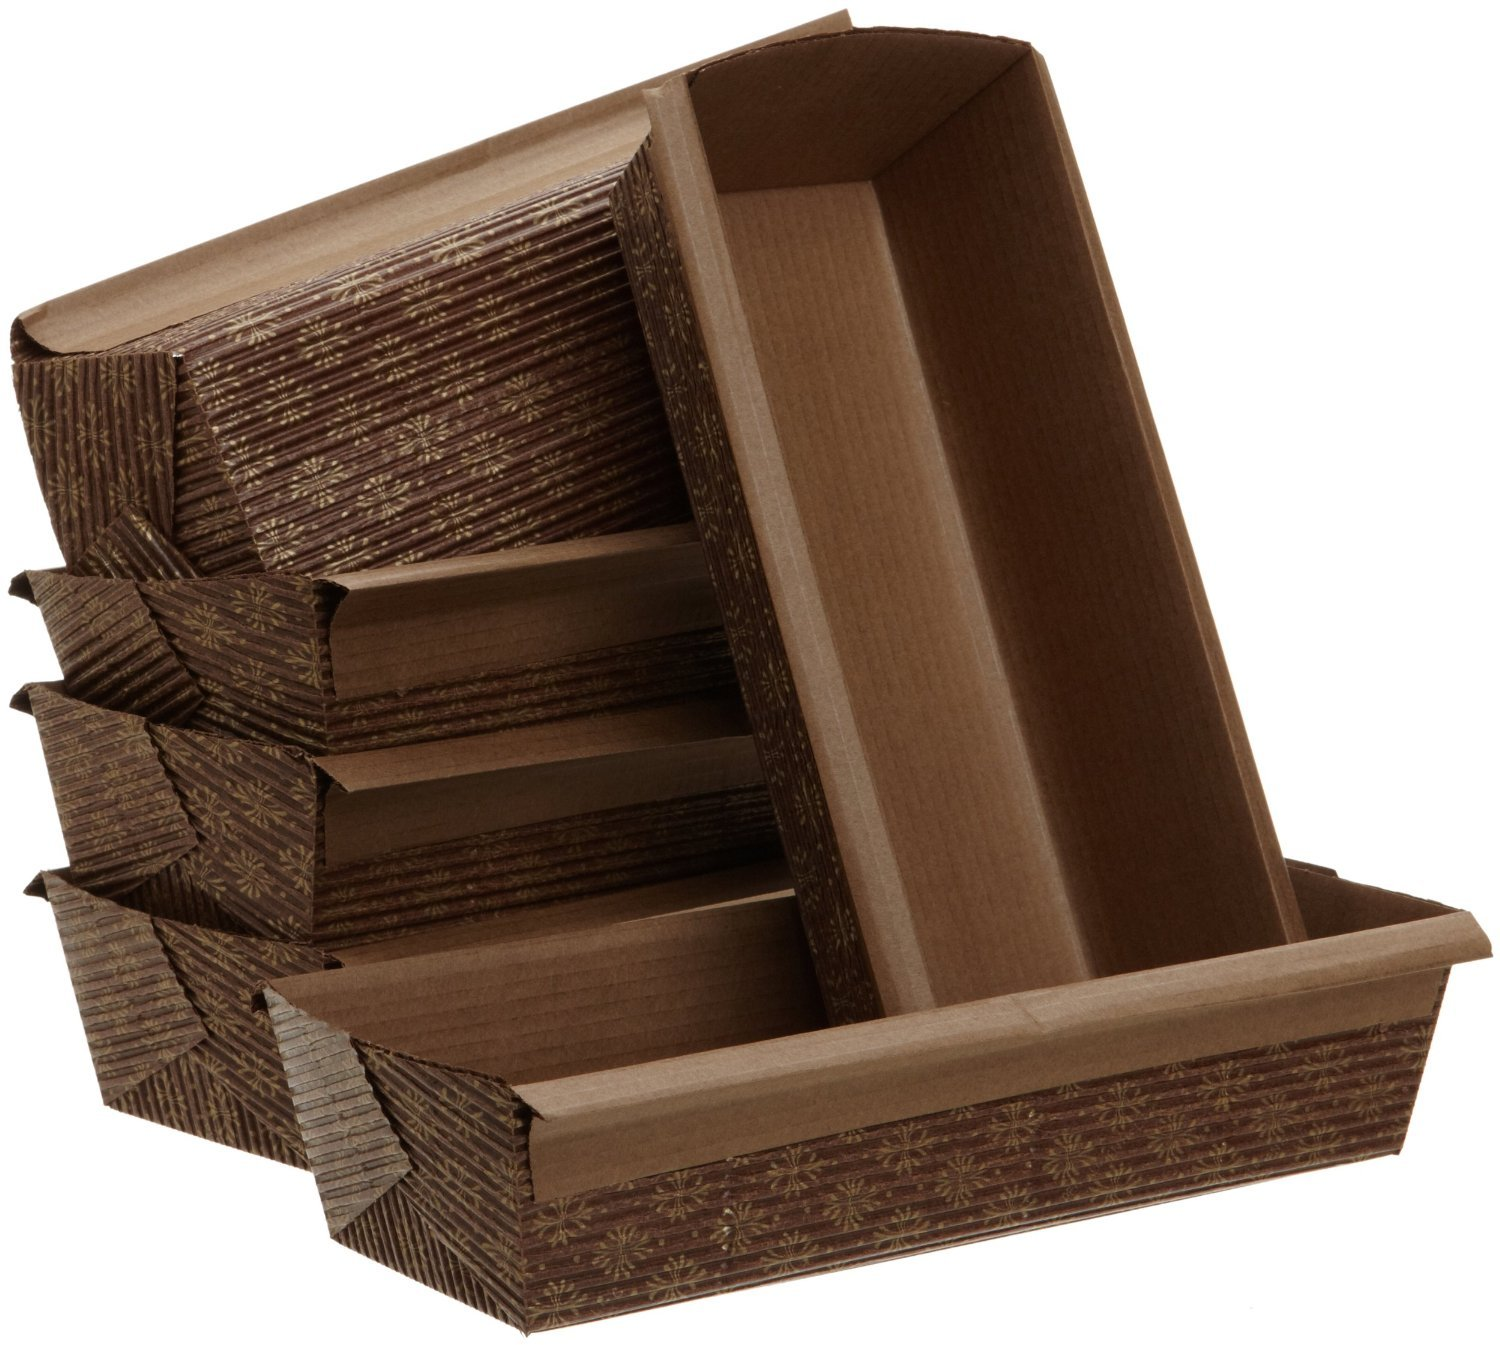 Kitchen Supply 2090 4 x 2 x 2 Inch Paper Loaf Pan Set of 6 Honey-Can-Do